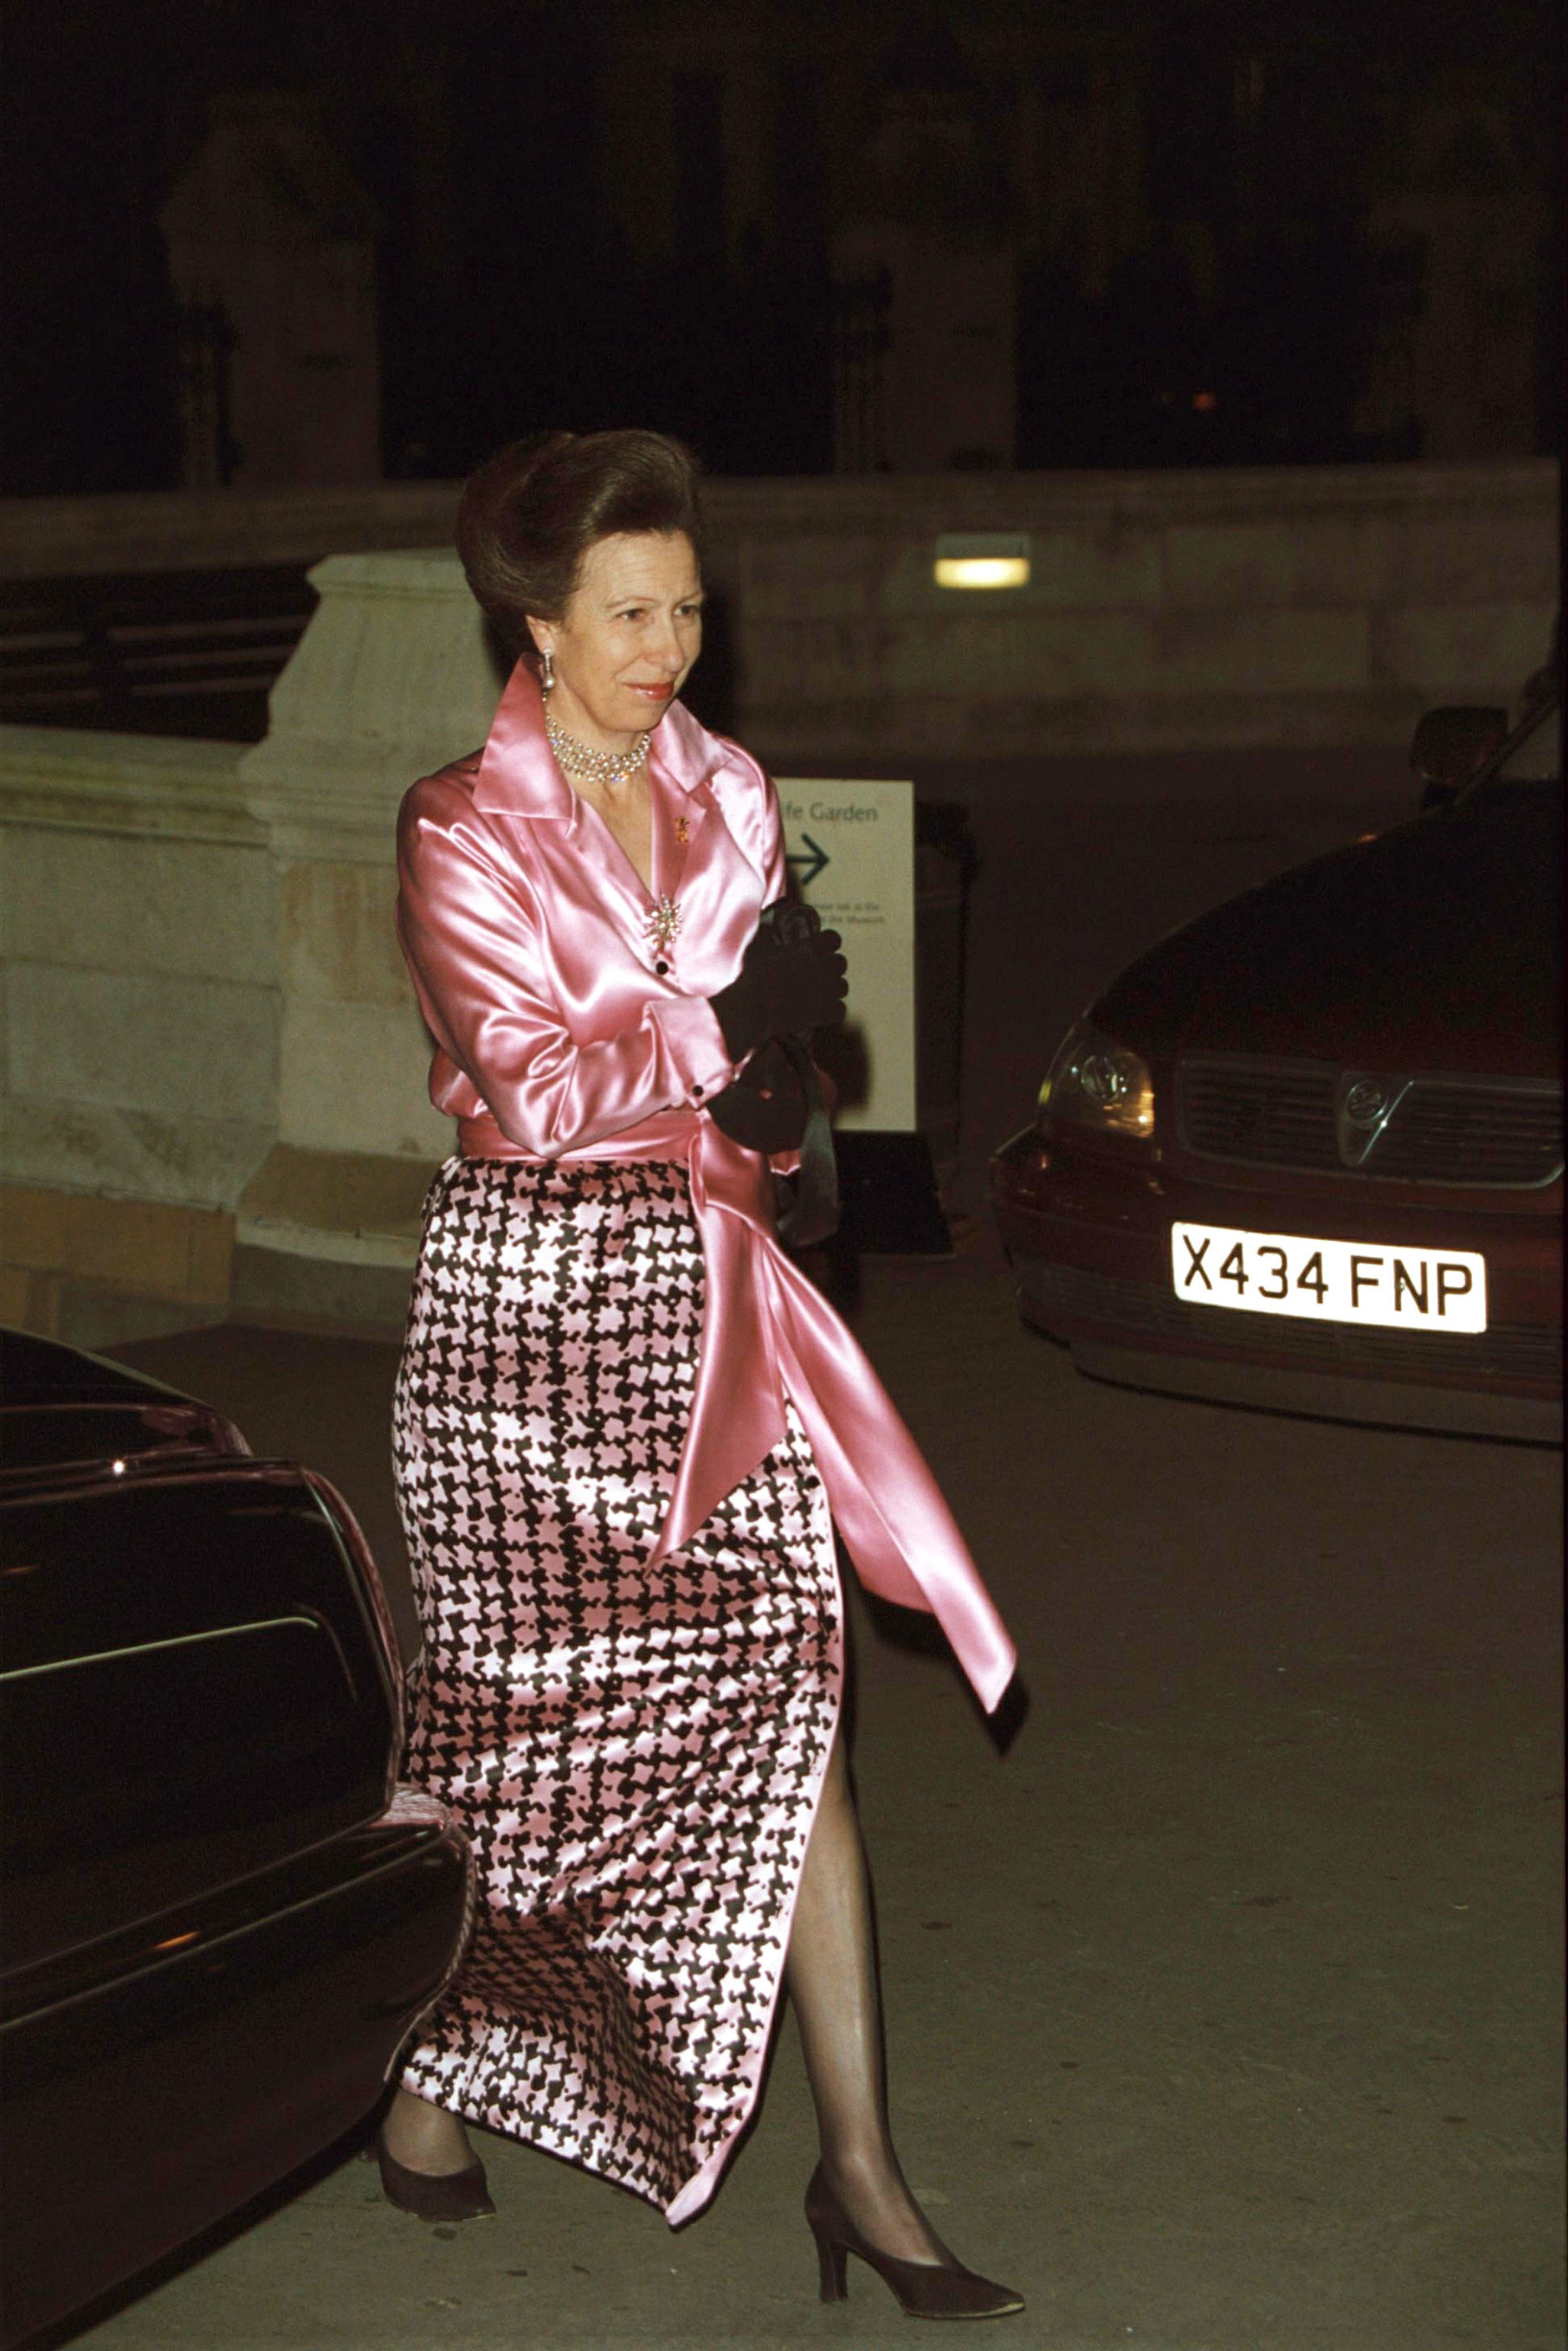 PRINCESSE ANNE Princess Anne's Recycled Clothes 783441 COM  Princess Anne's Recycled Clothes  Princess Anne has long been known by fashion-conscious Royal watchers as one of the least profligate Royals when it comes to clothing, believing that if a dress is worth wearing once, then it's worth wearing again.   This was highlighted recently (Jul 2008) when she wore the same outfit at the wedding of her cousin Lady Rose Windsor as the one she wore to Prince Charles's wedding to Diana 27 years previously. The white dress with yellow floral print was even partnered by the same hat she wore back in 1981.   Unlike others in the public eye, the Princess Royal believes in being frugal by recycling items in her wardrobe.